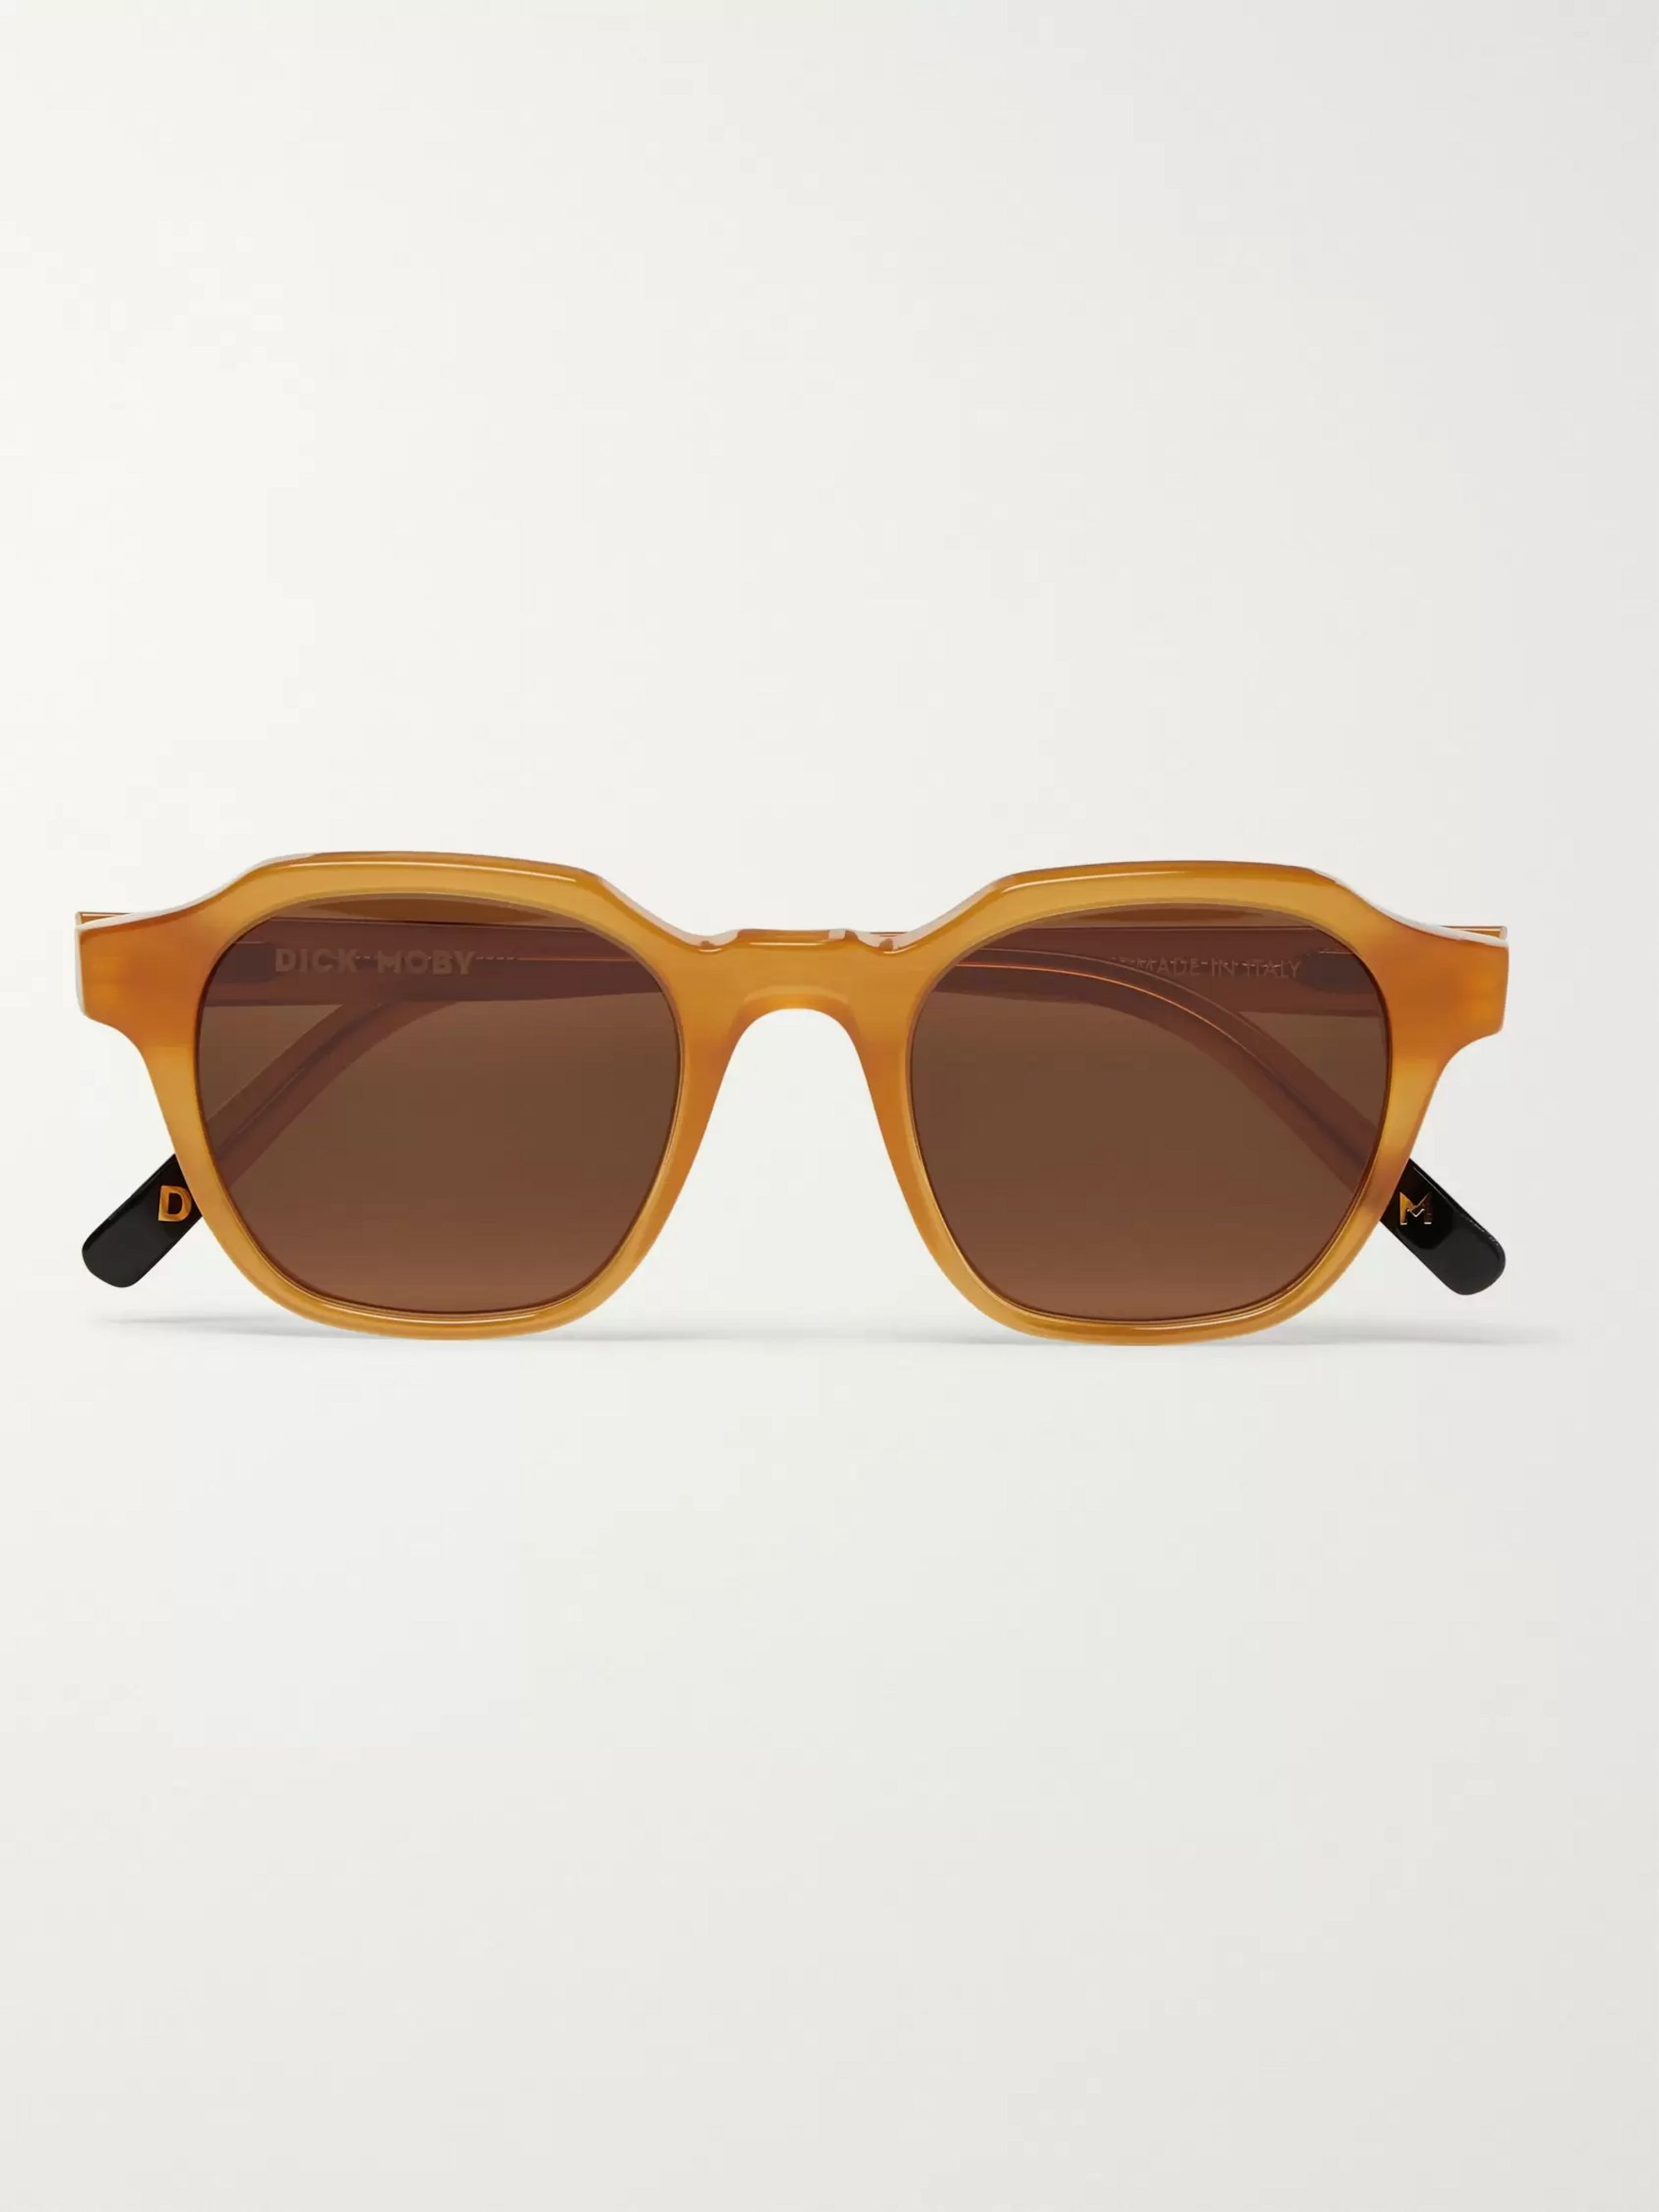 Dick Moby Barcelona D-Frame Acetate Sunglasses